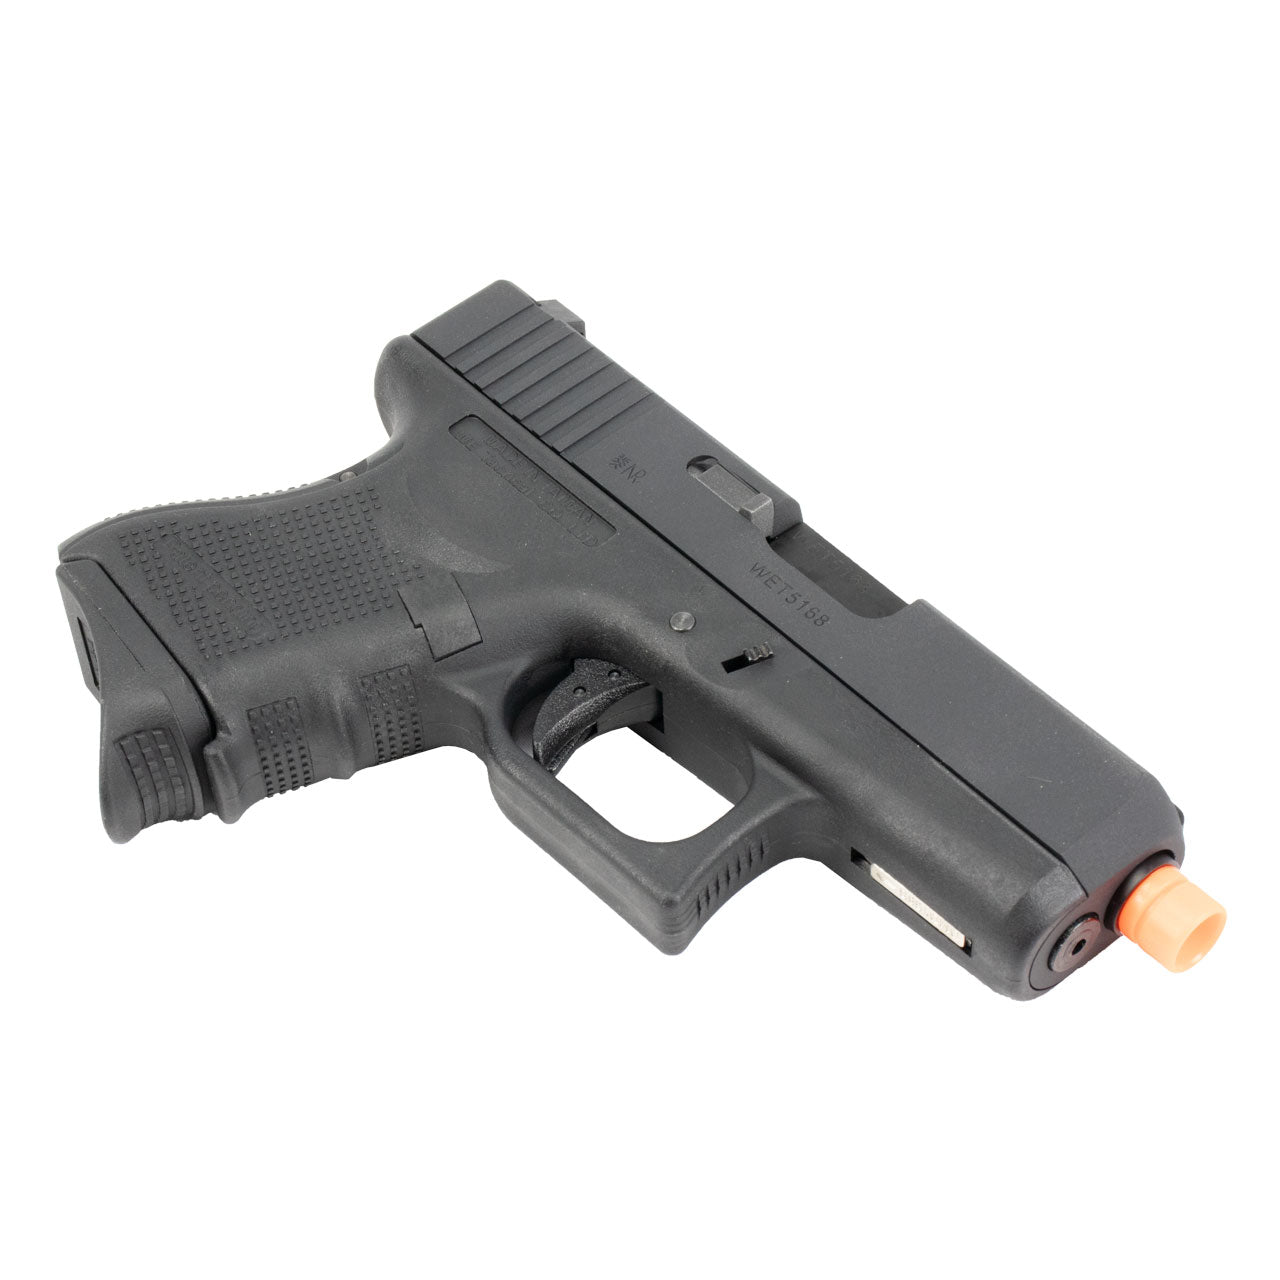 WE G-26 Gen 4 Gas Blowback Airsoft Pistol